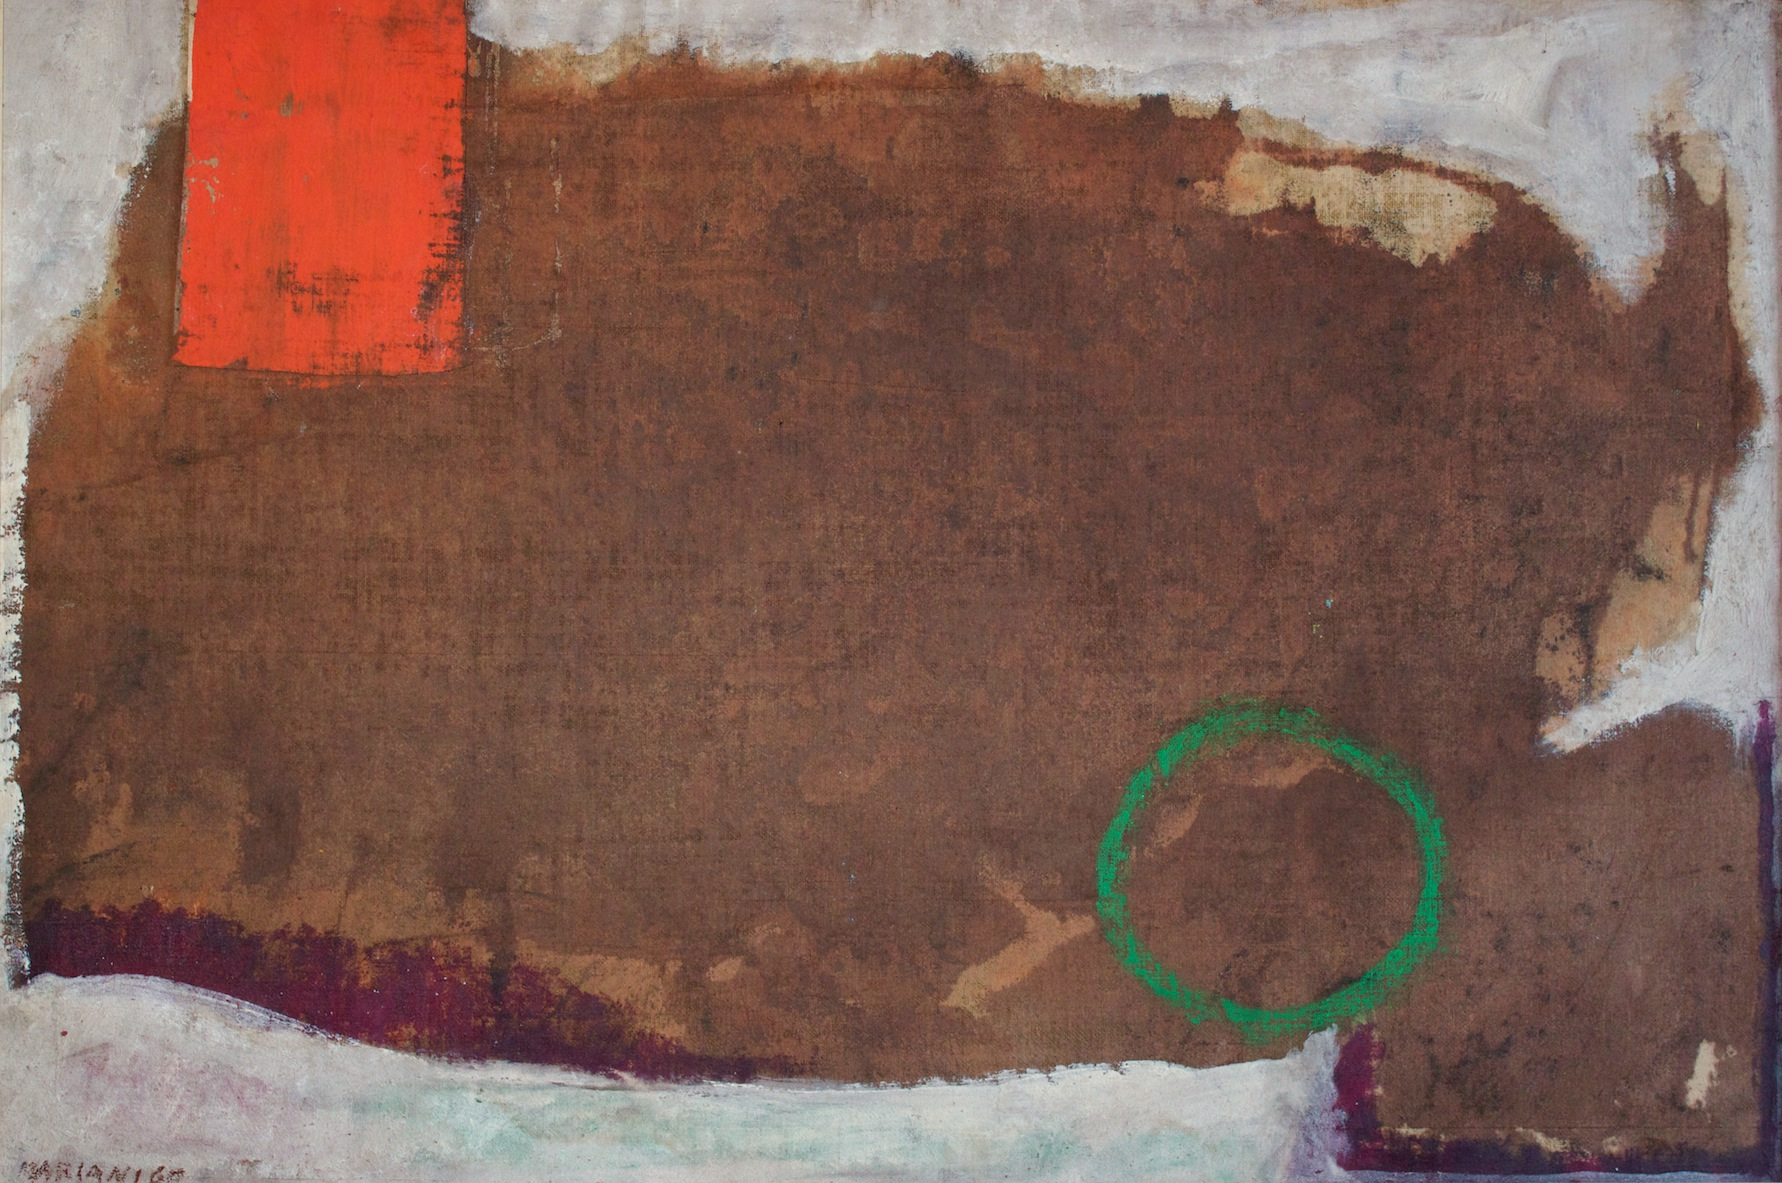 Marcello Mariani - Spazialità Cellulare - Oil and mixed media on canvas - 1960